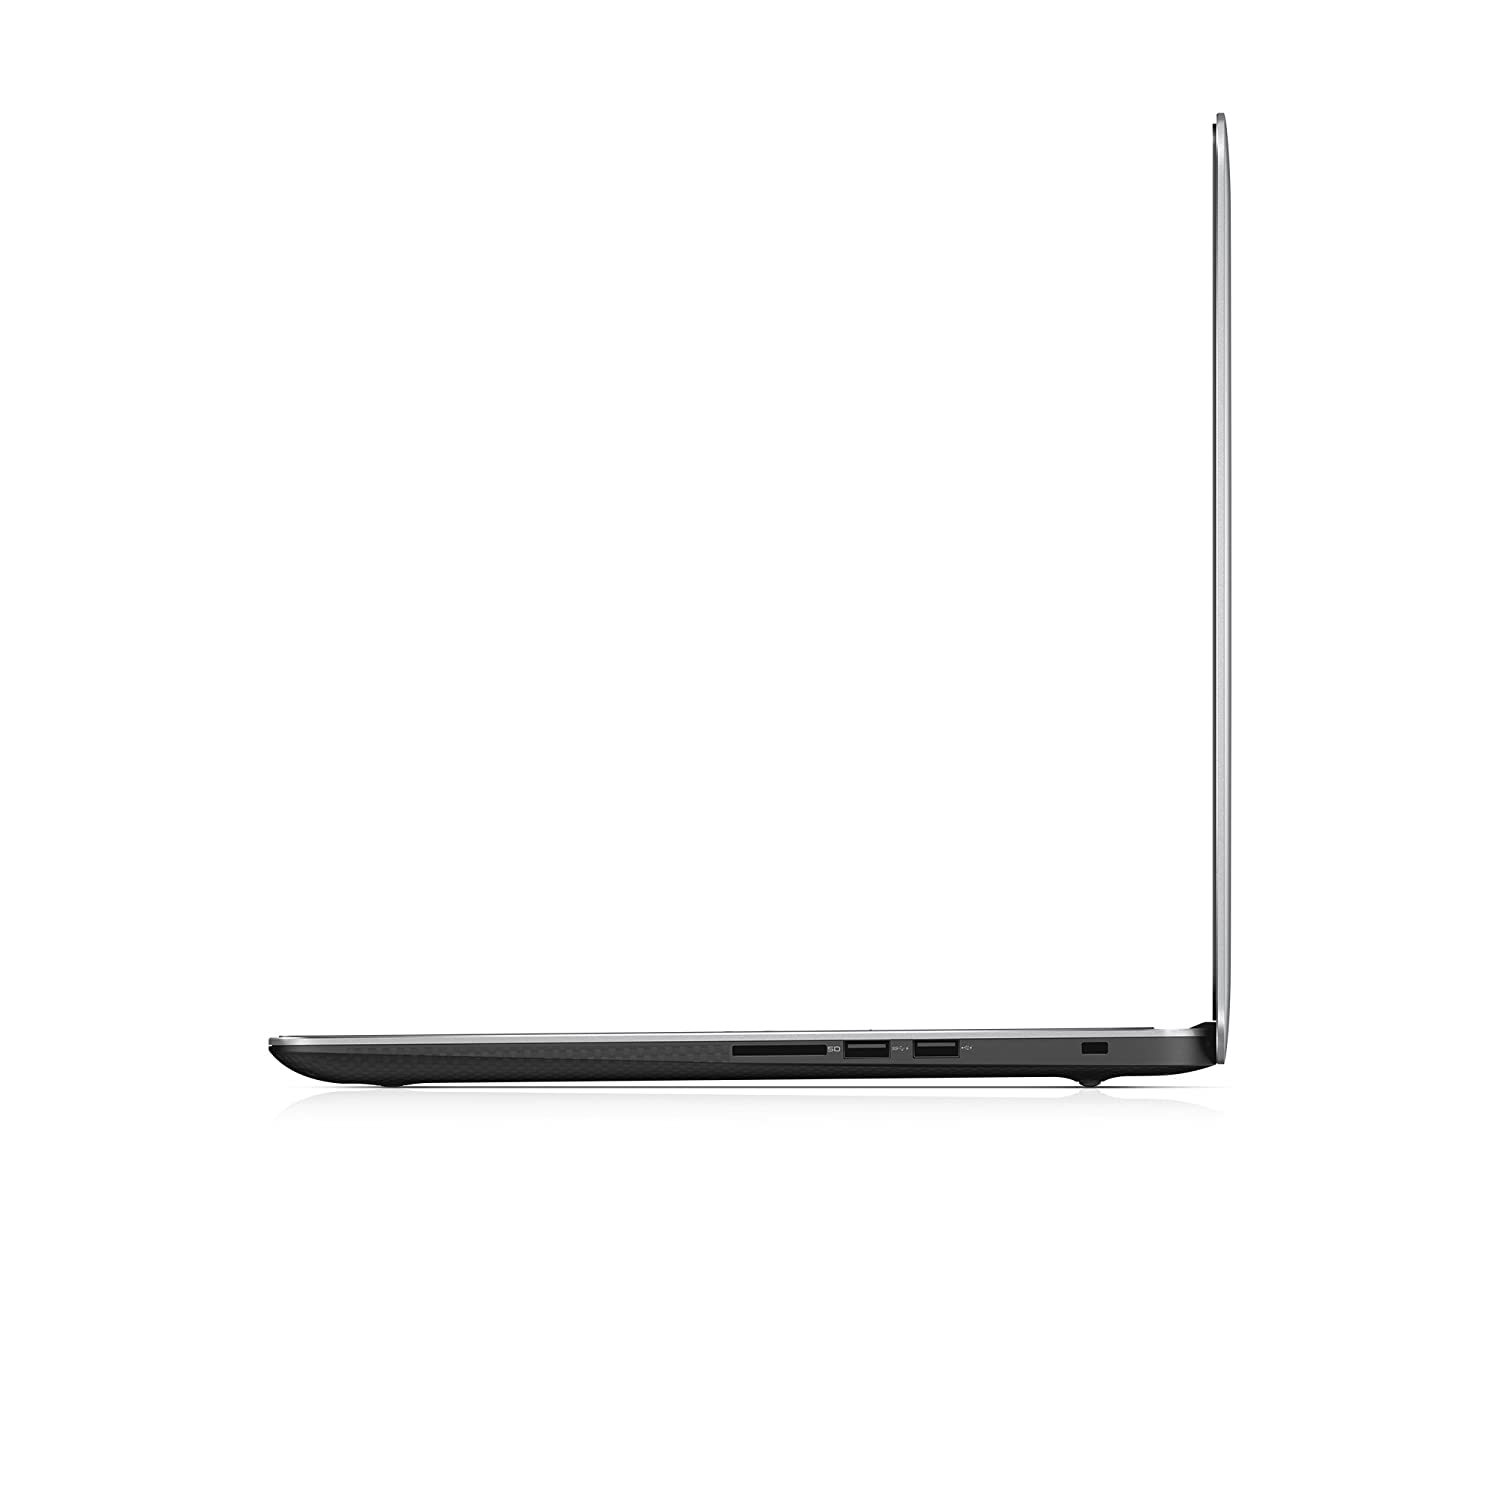 Dell Xps 15 Uhd 156 Inch Touchscreen Laptop Intel Core 9570 I7 8750h 16gb 512gb 1050ti Win10 Pro 4k 4712hq 23 Ghz Processor 16 Gb Ram 512 Ssdwindows 81 Os Silver Computers